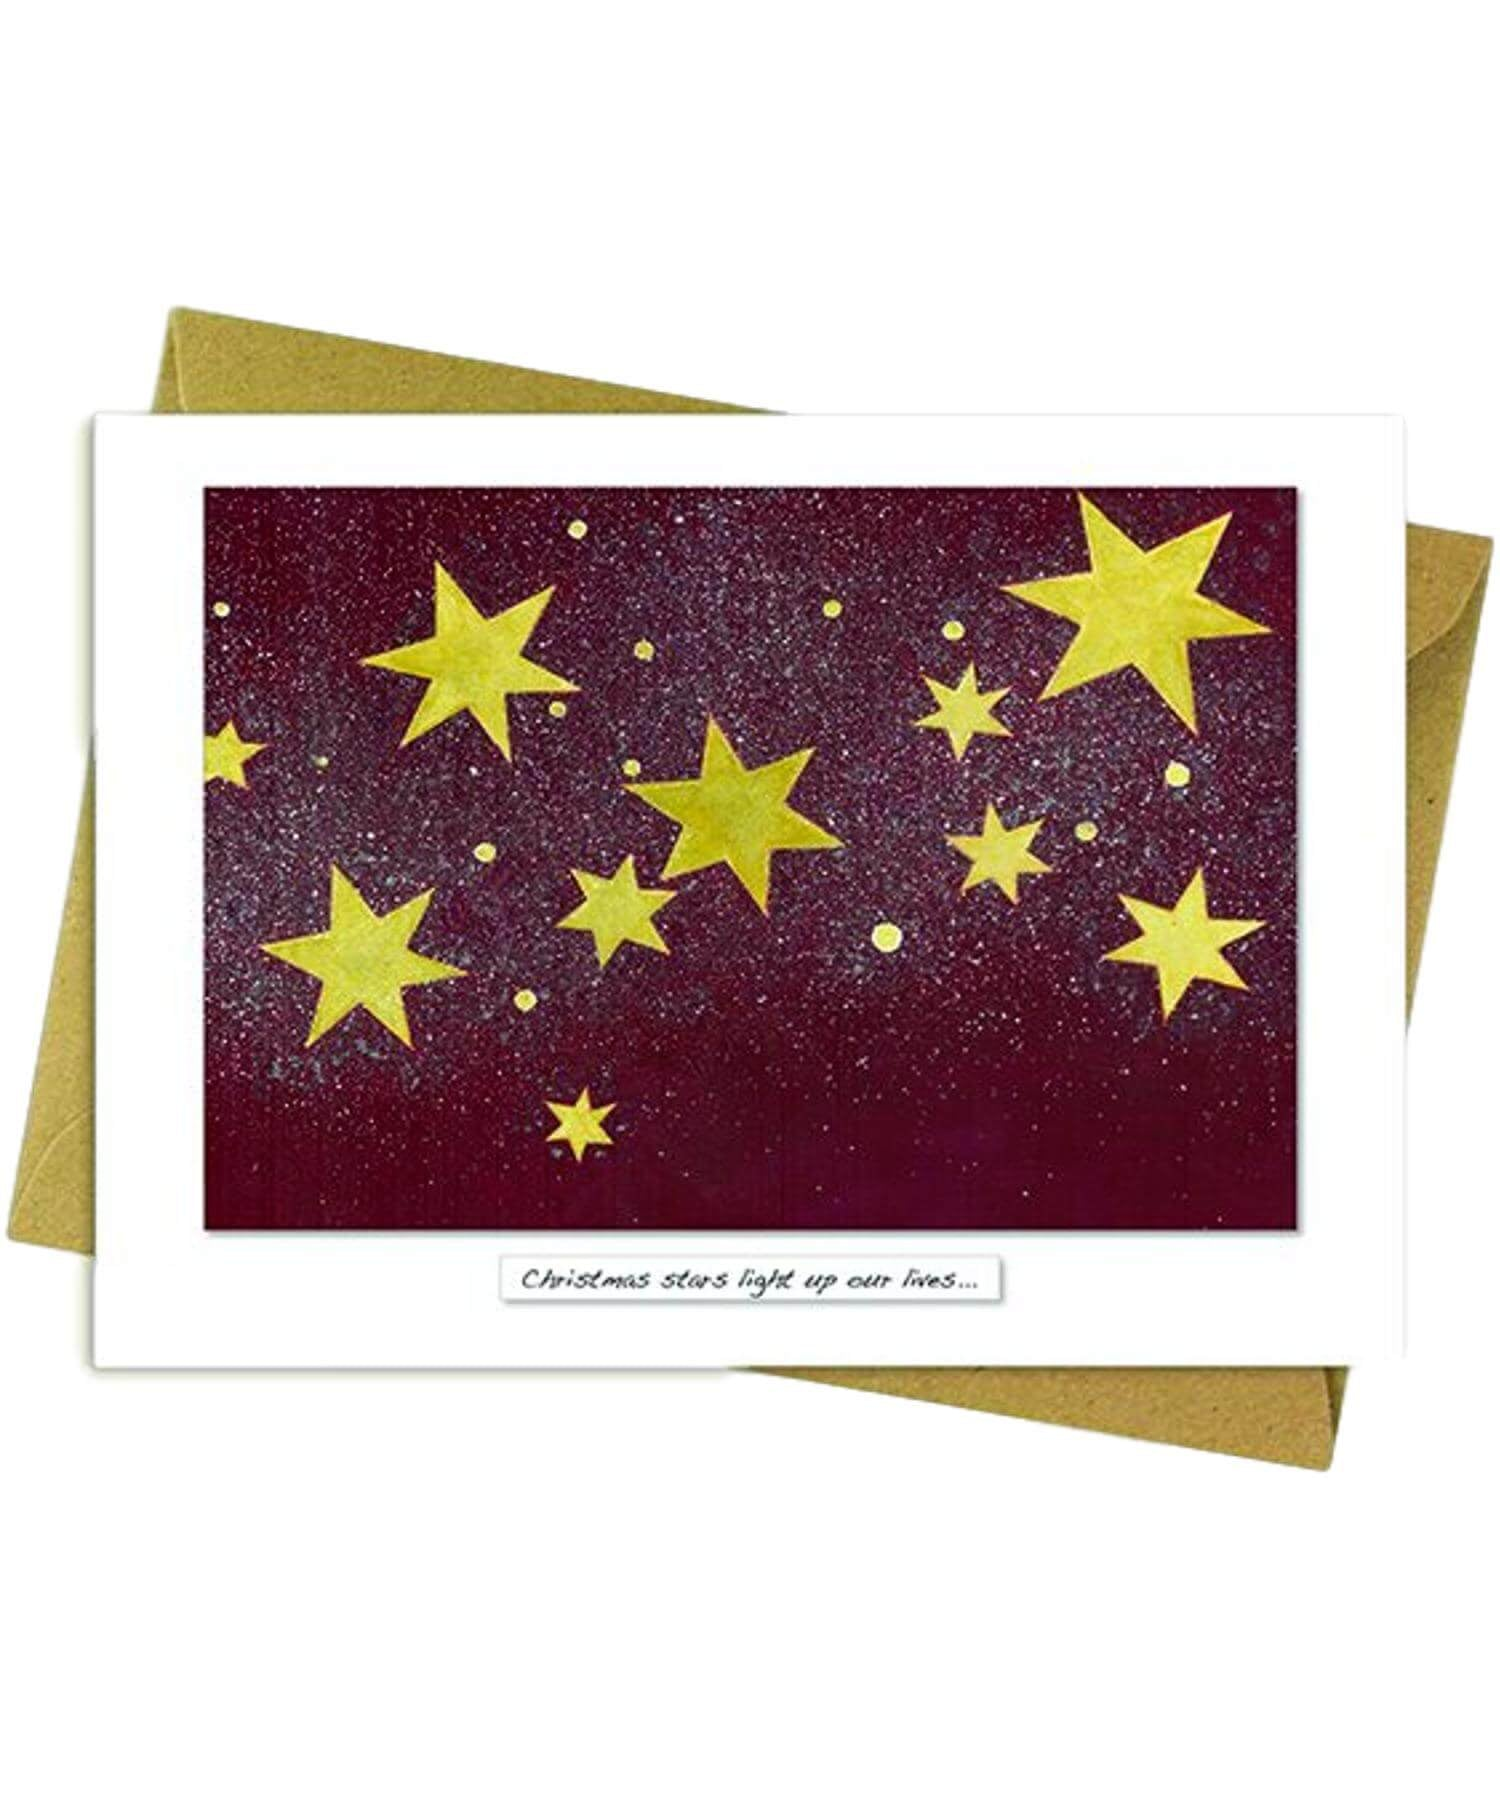 Greeting Card - Christmas Stars - [Rita Oates] - Greeting Cards - Irish Gifts